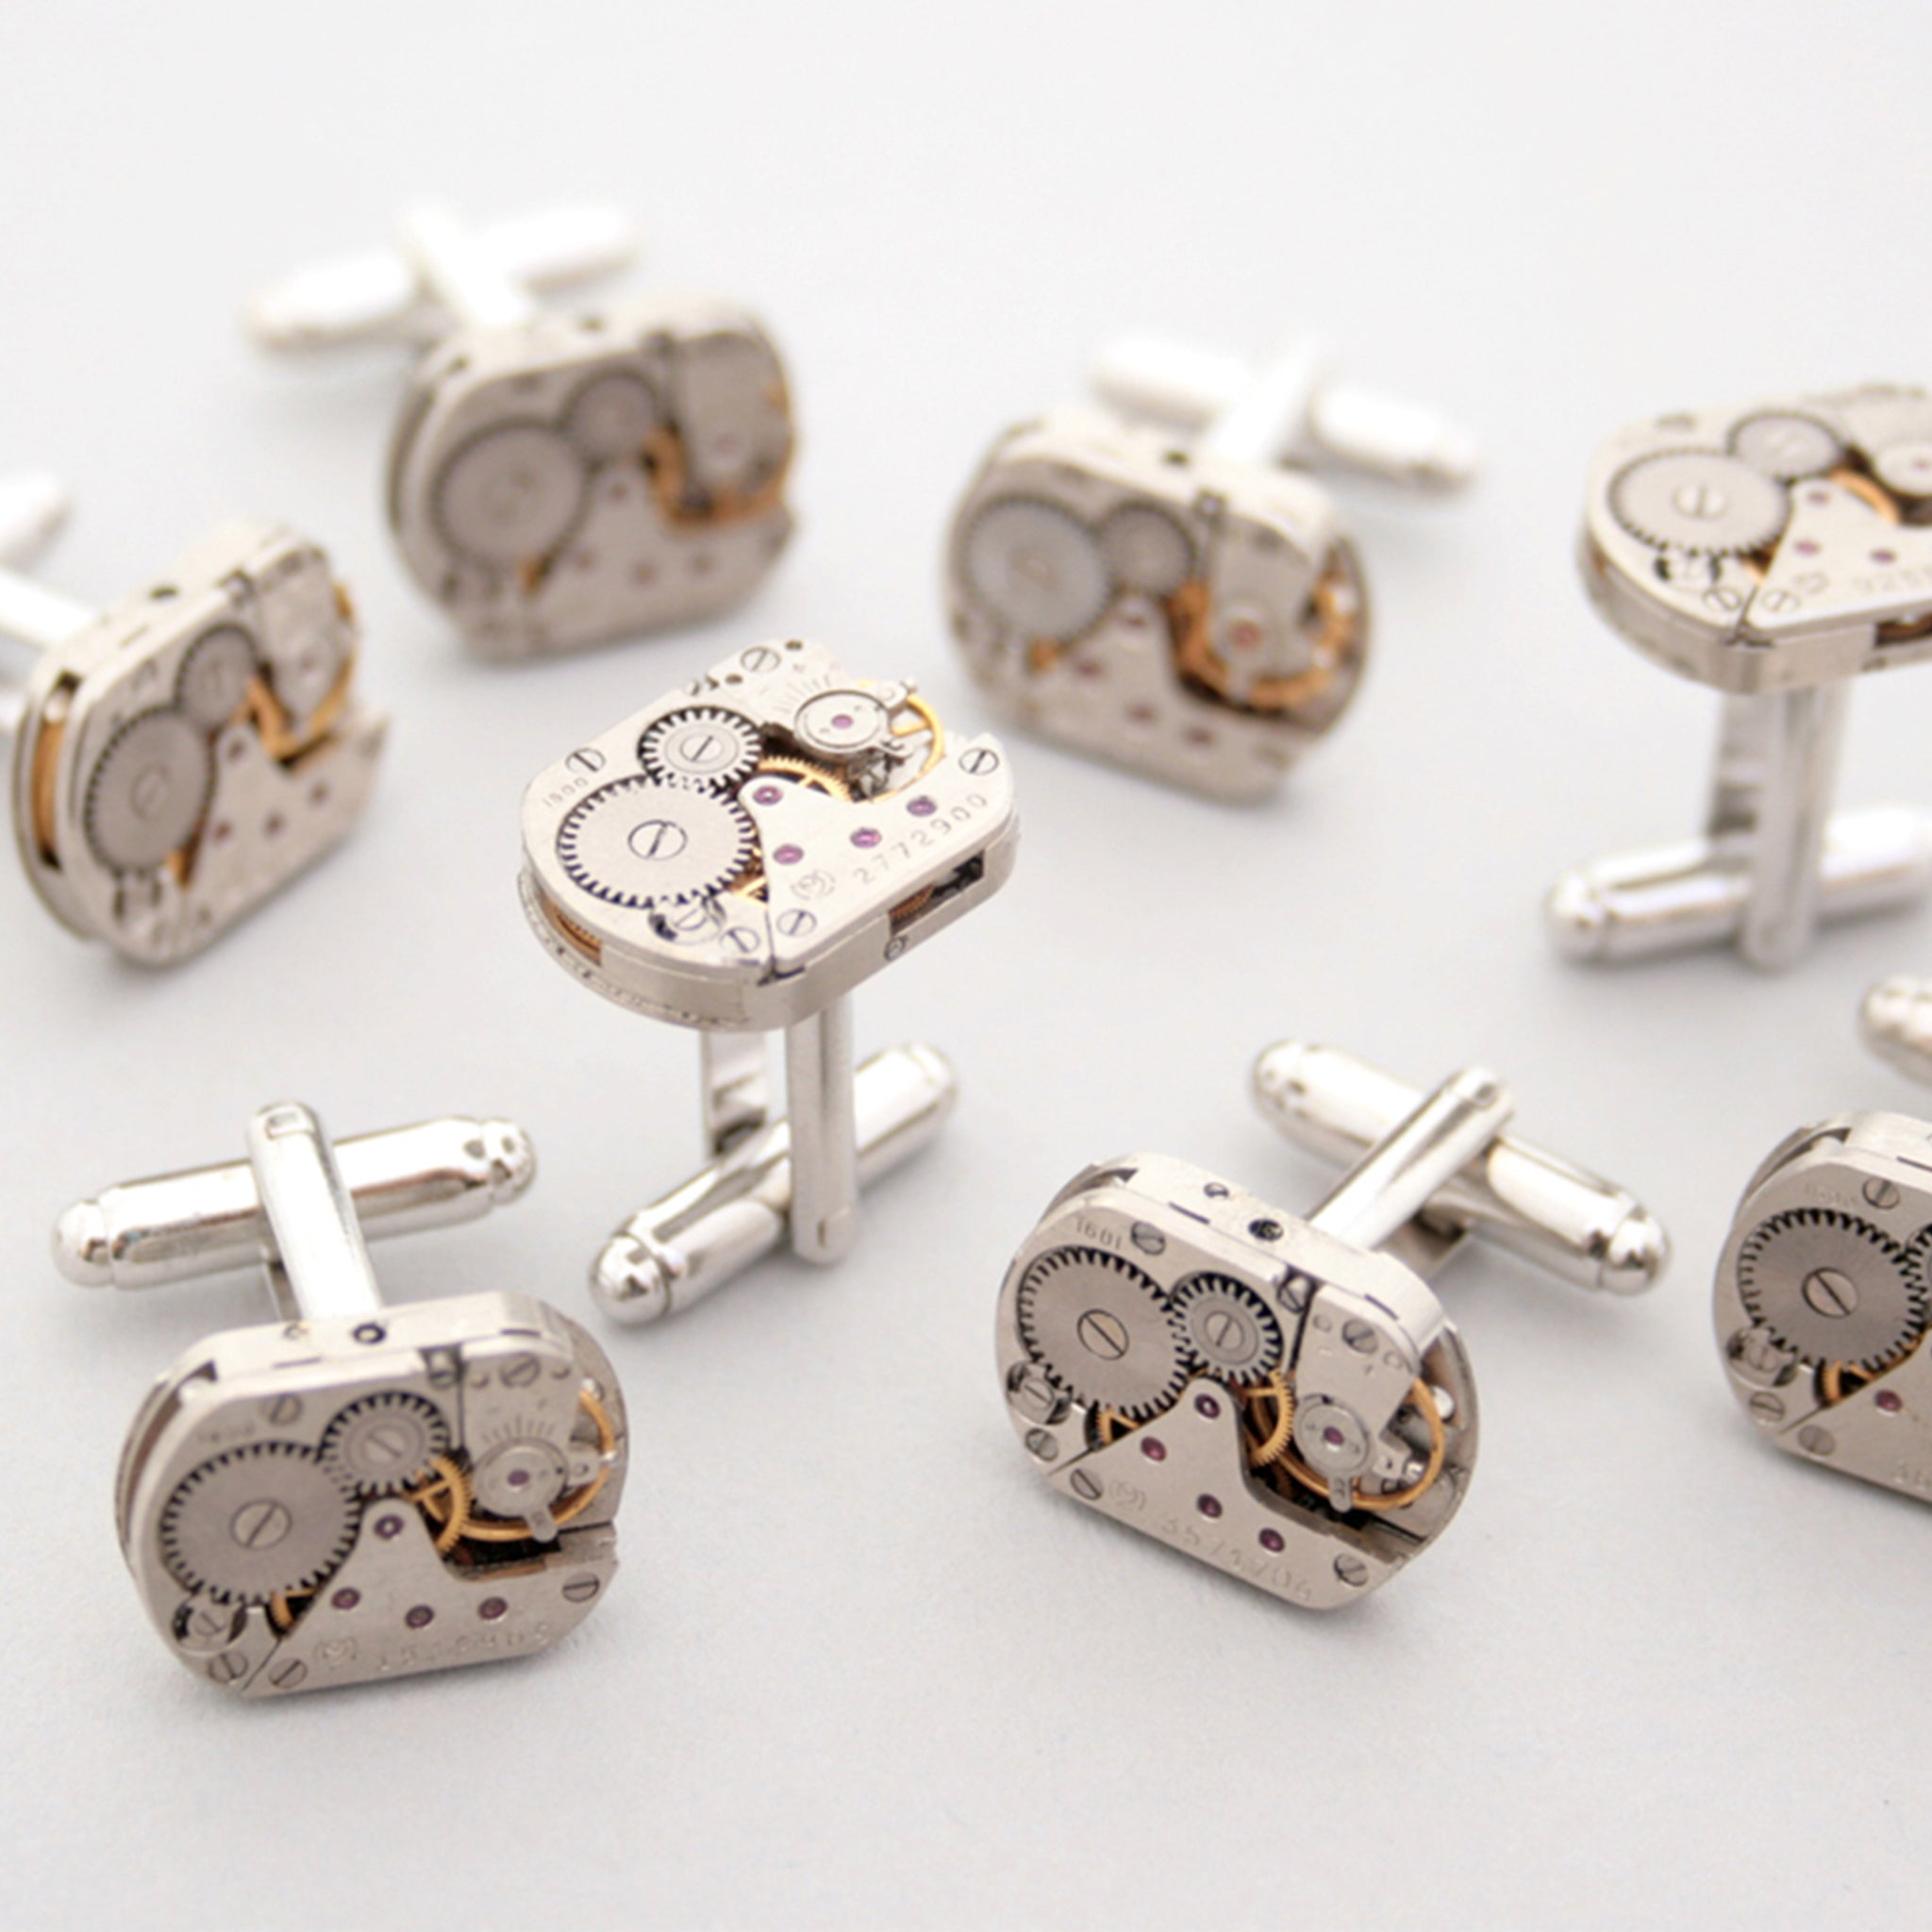 Many sets of Steampunk Cufflinks for Men featuring antique watch movements